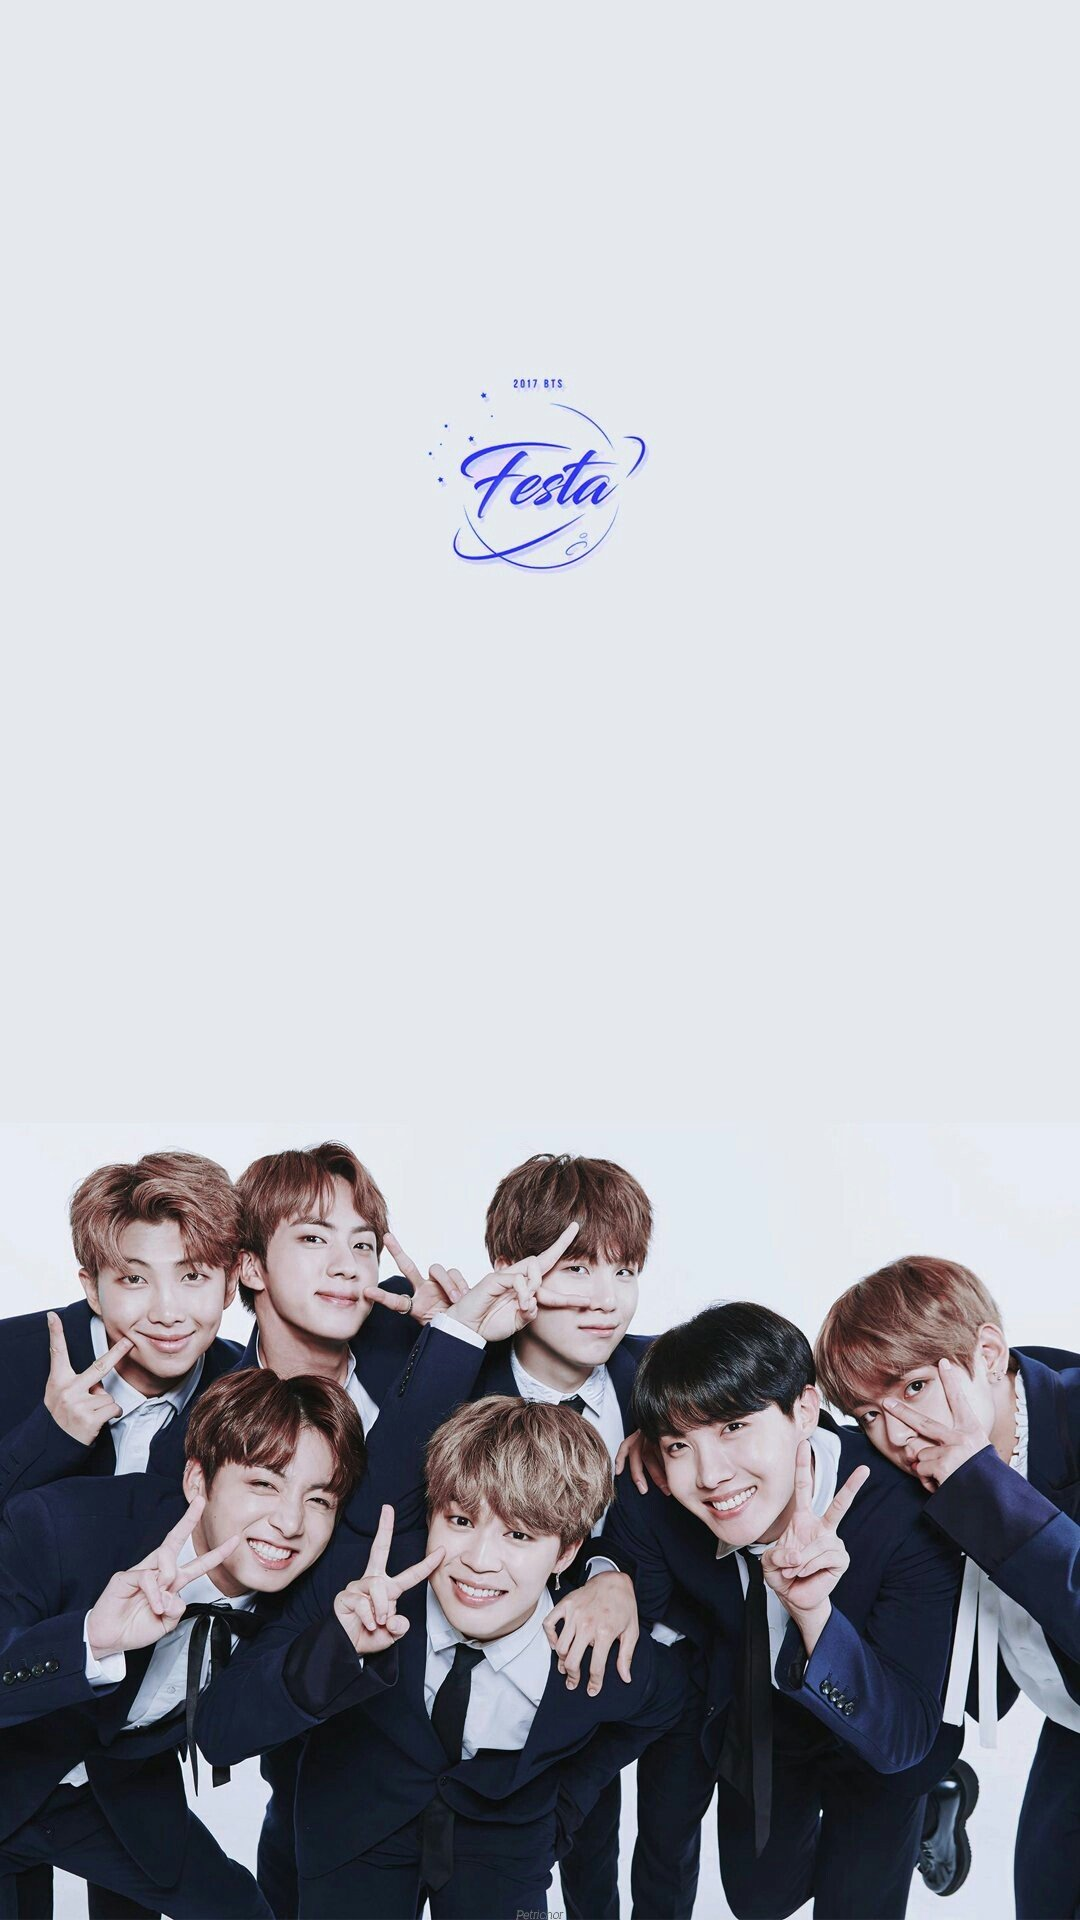 Bts Wallpapers 71 images 1080x1920